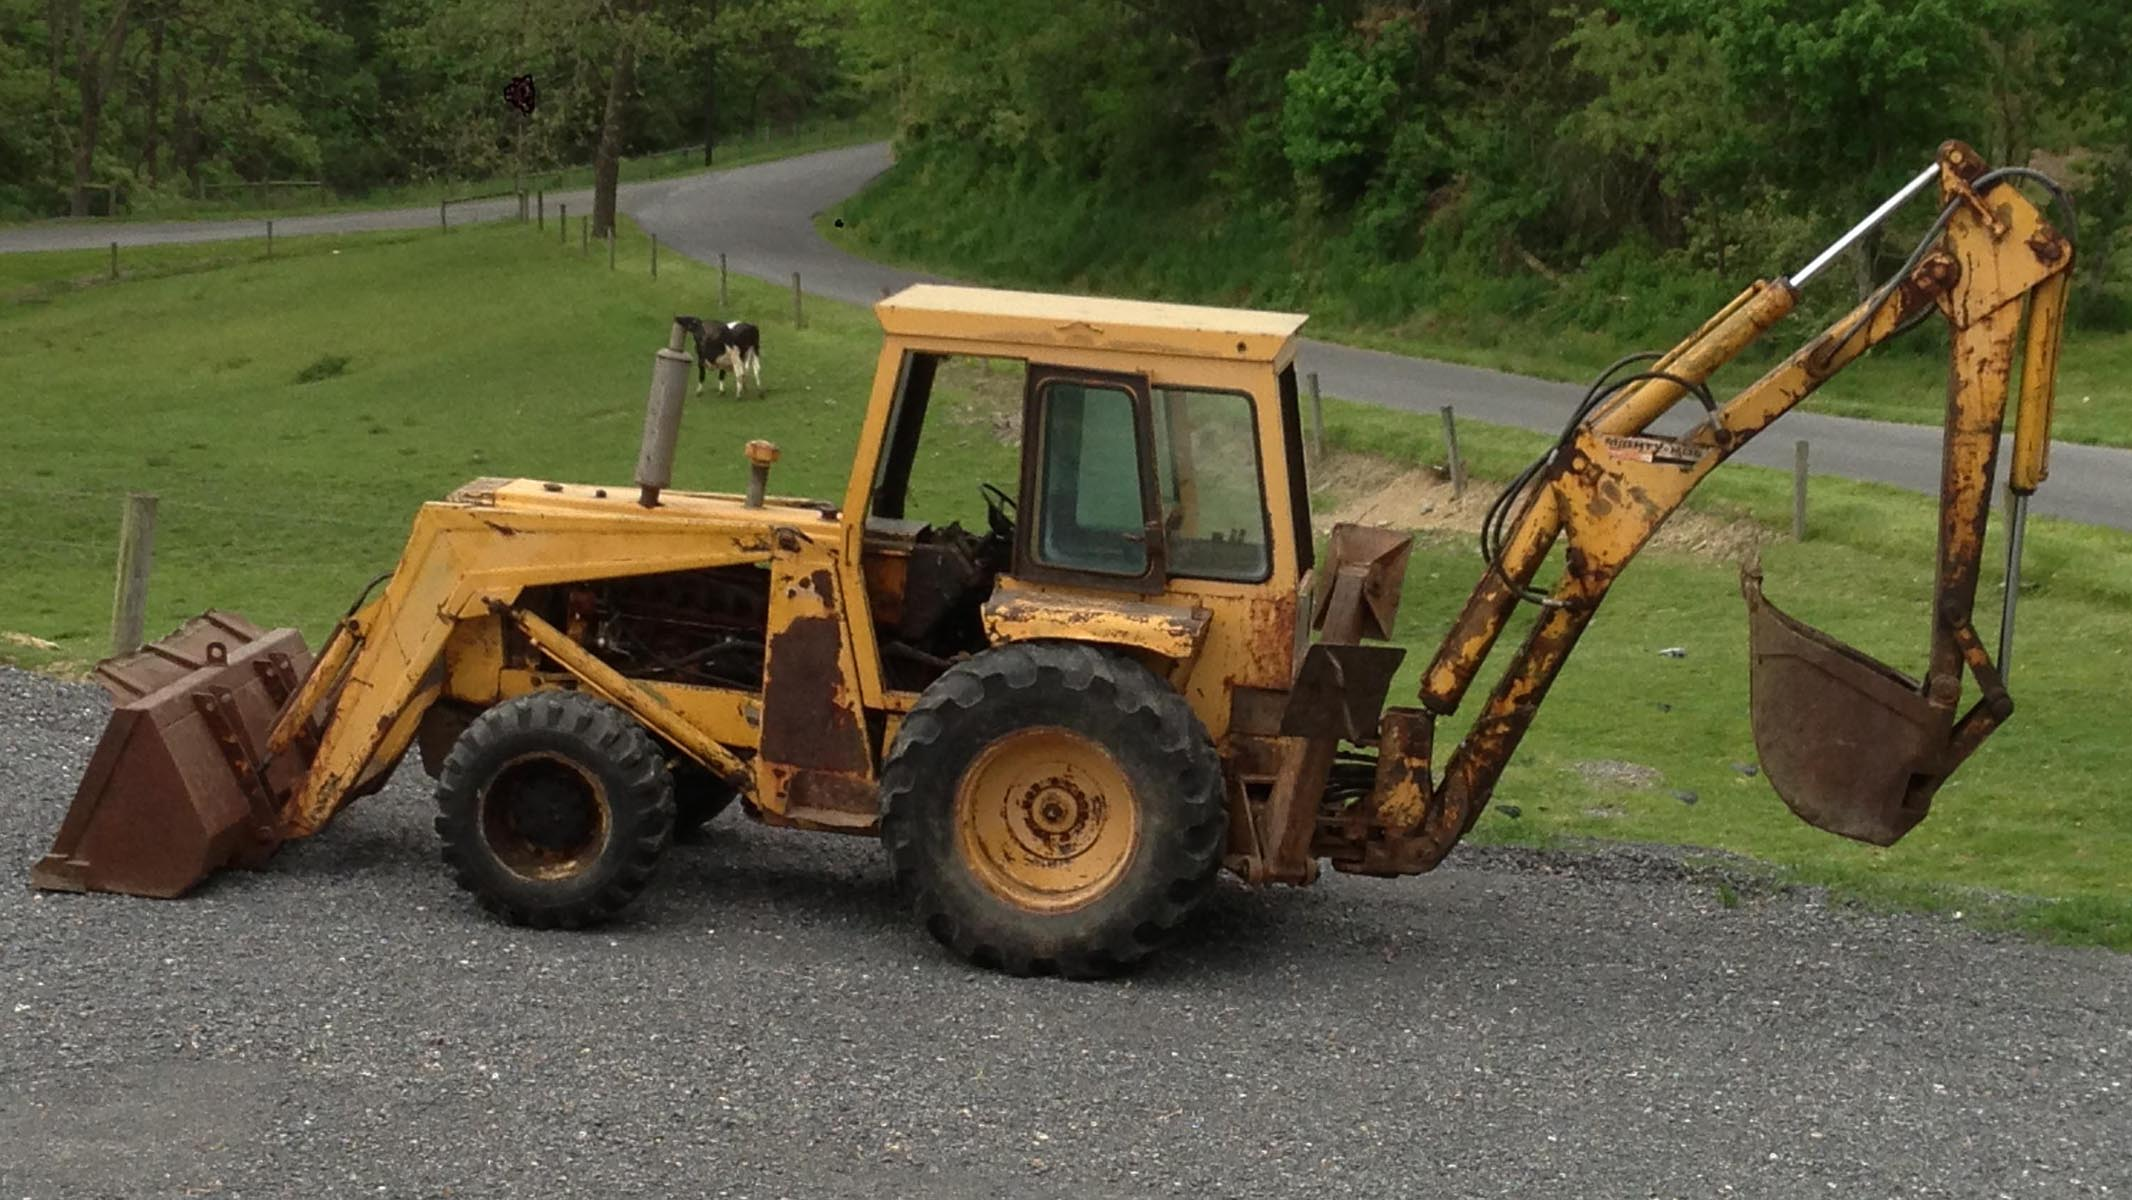 550 Oliver Tractor With Loader : Oliver industrial equipment tractors and parts